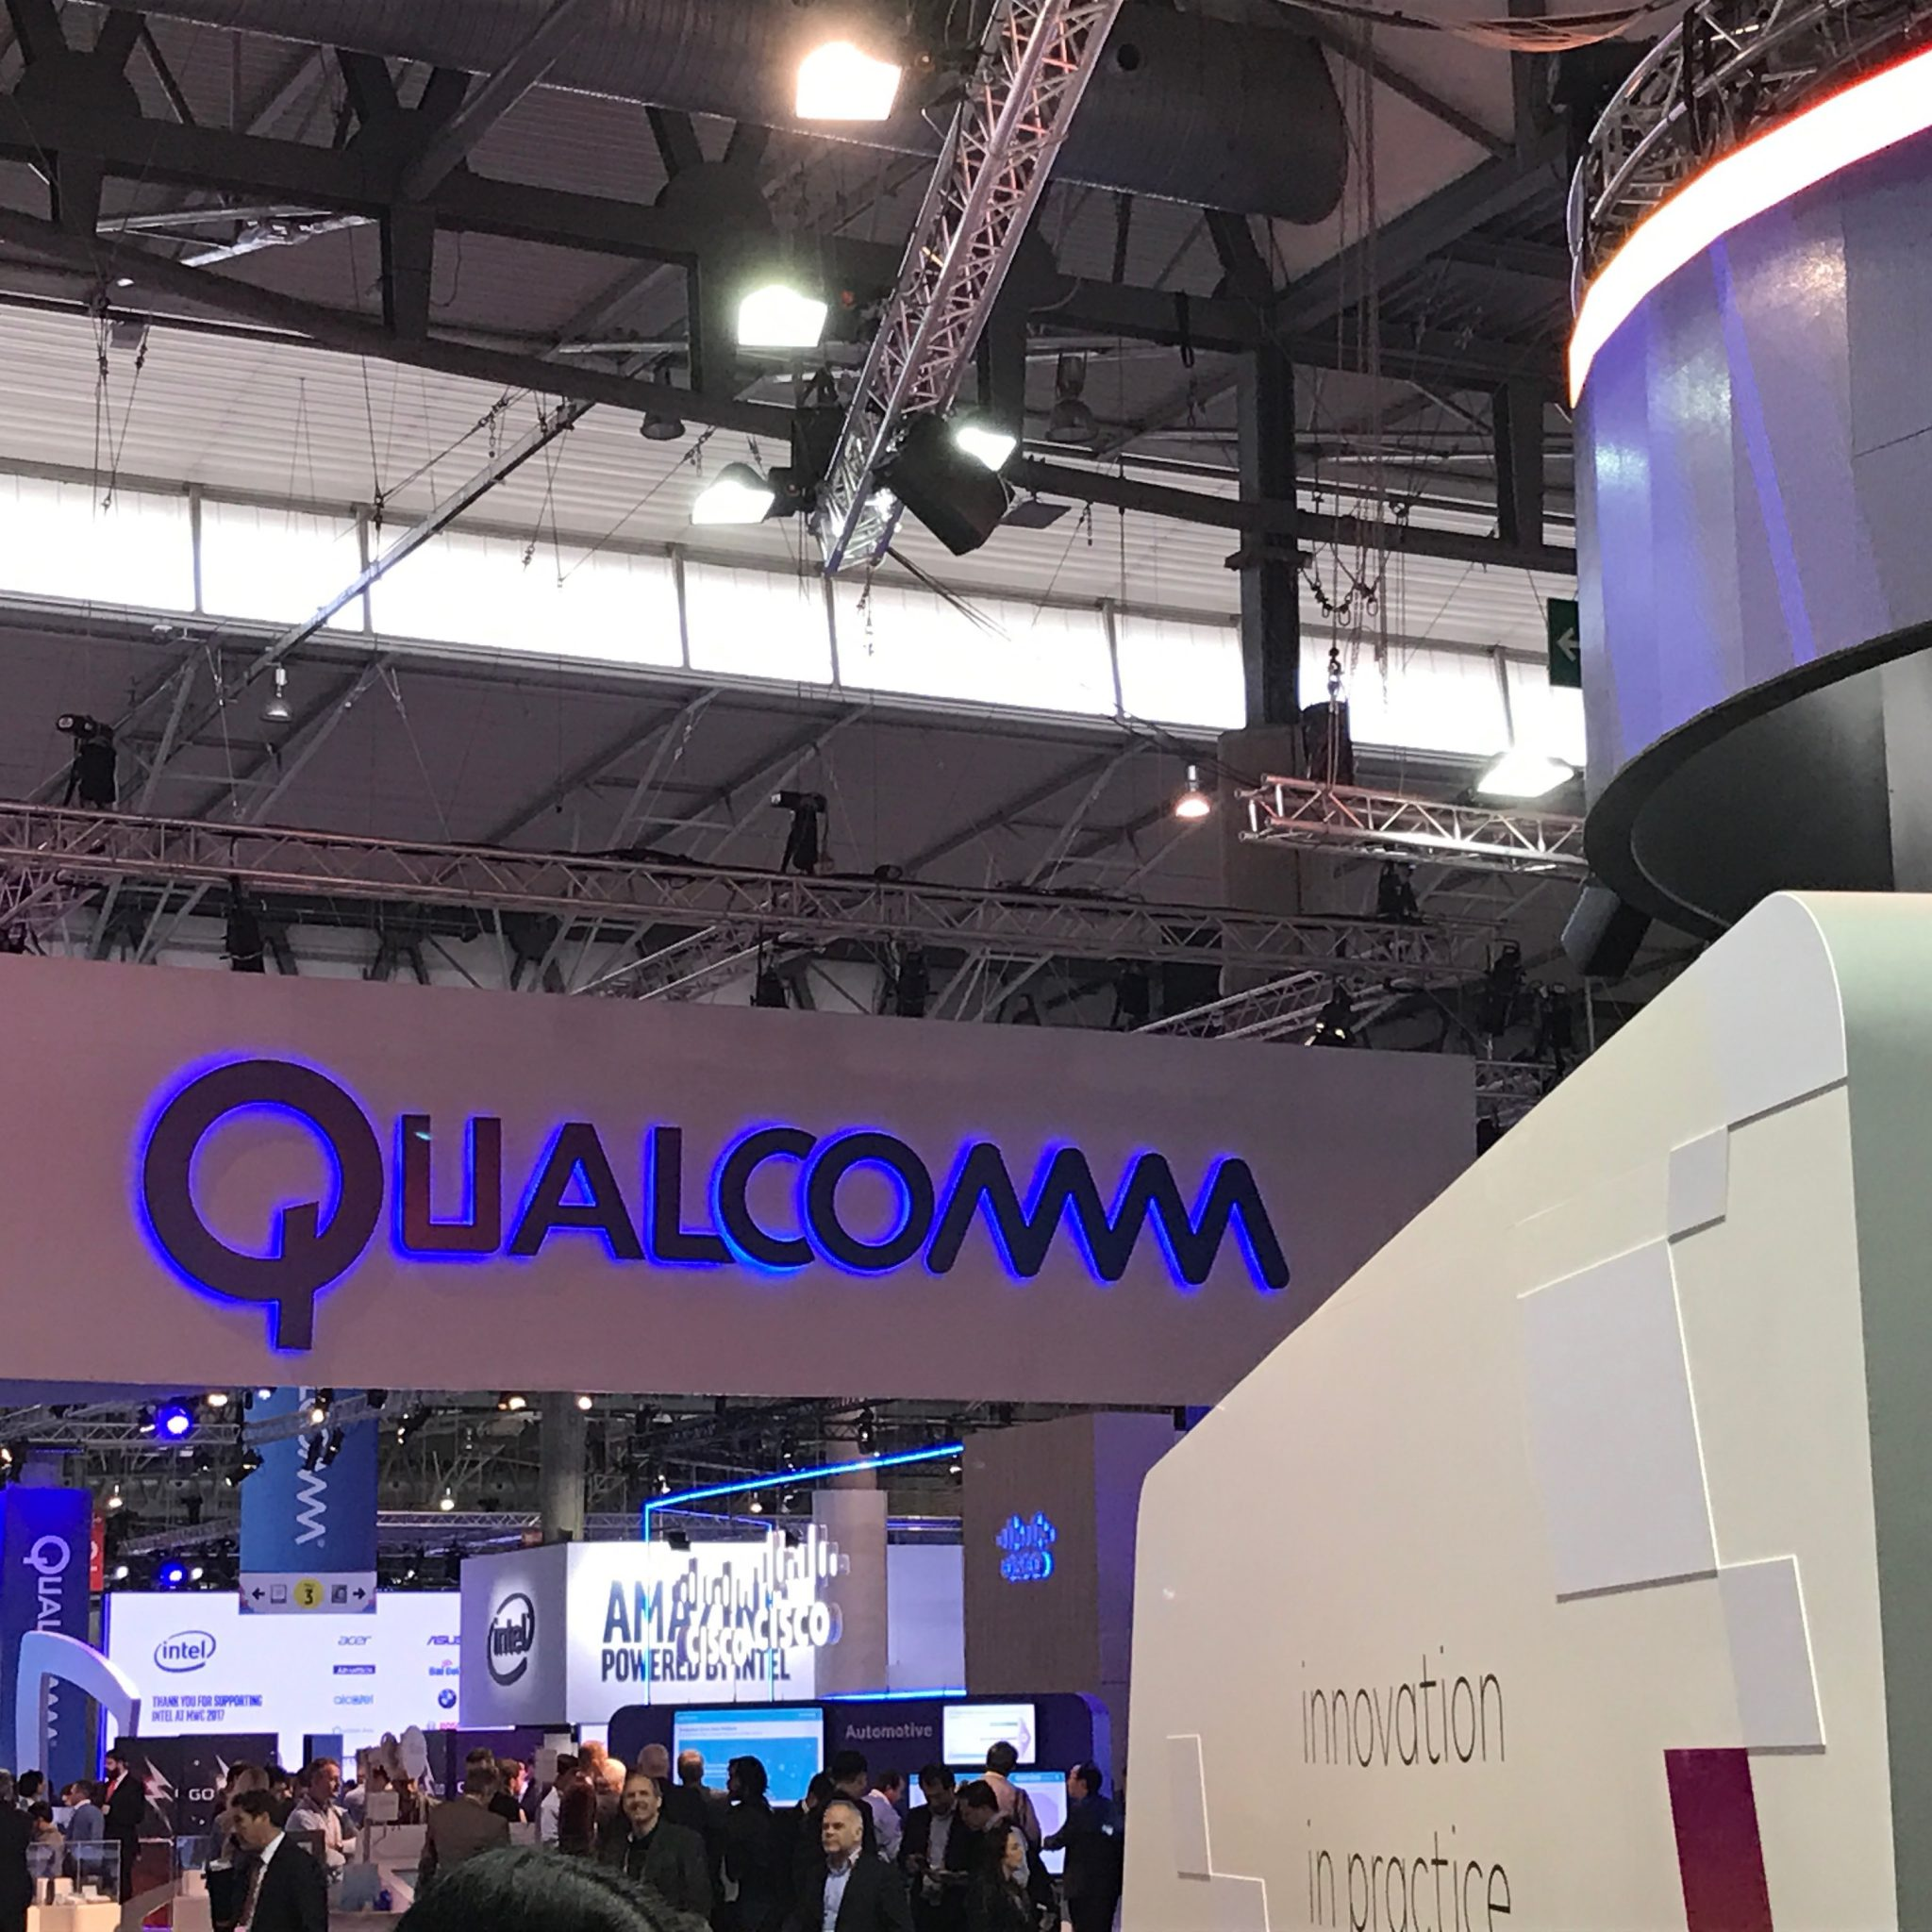 Broadcom's bid for Qualcomm could threaten national security, US warns